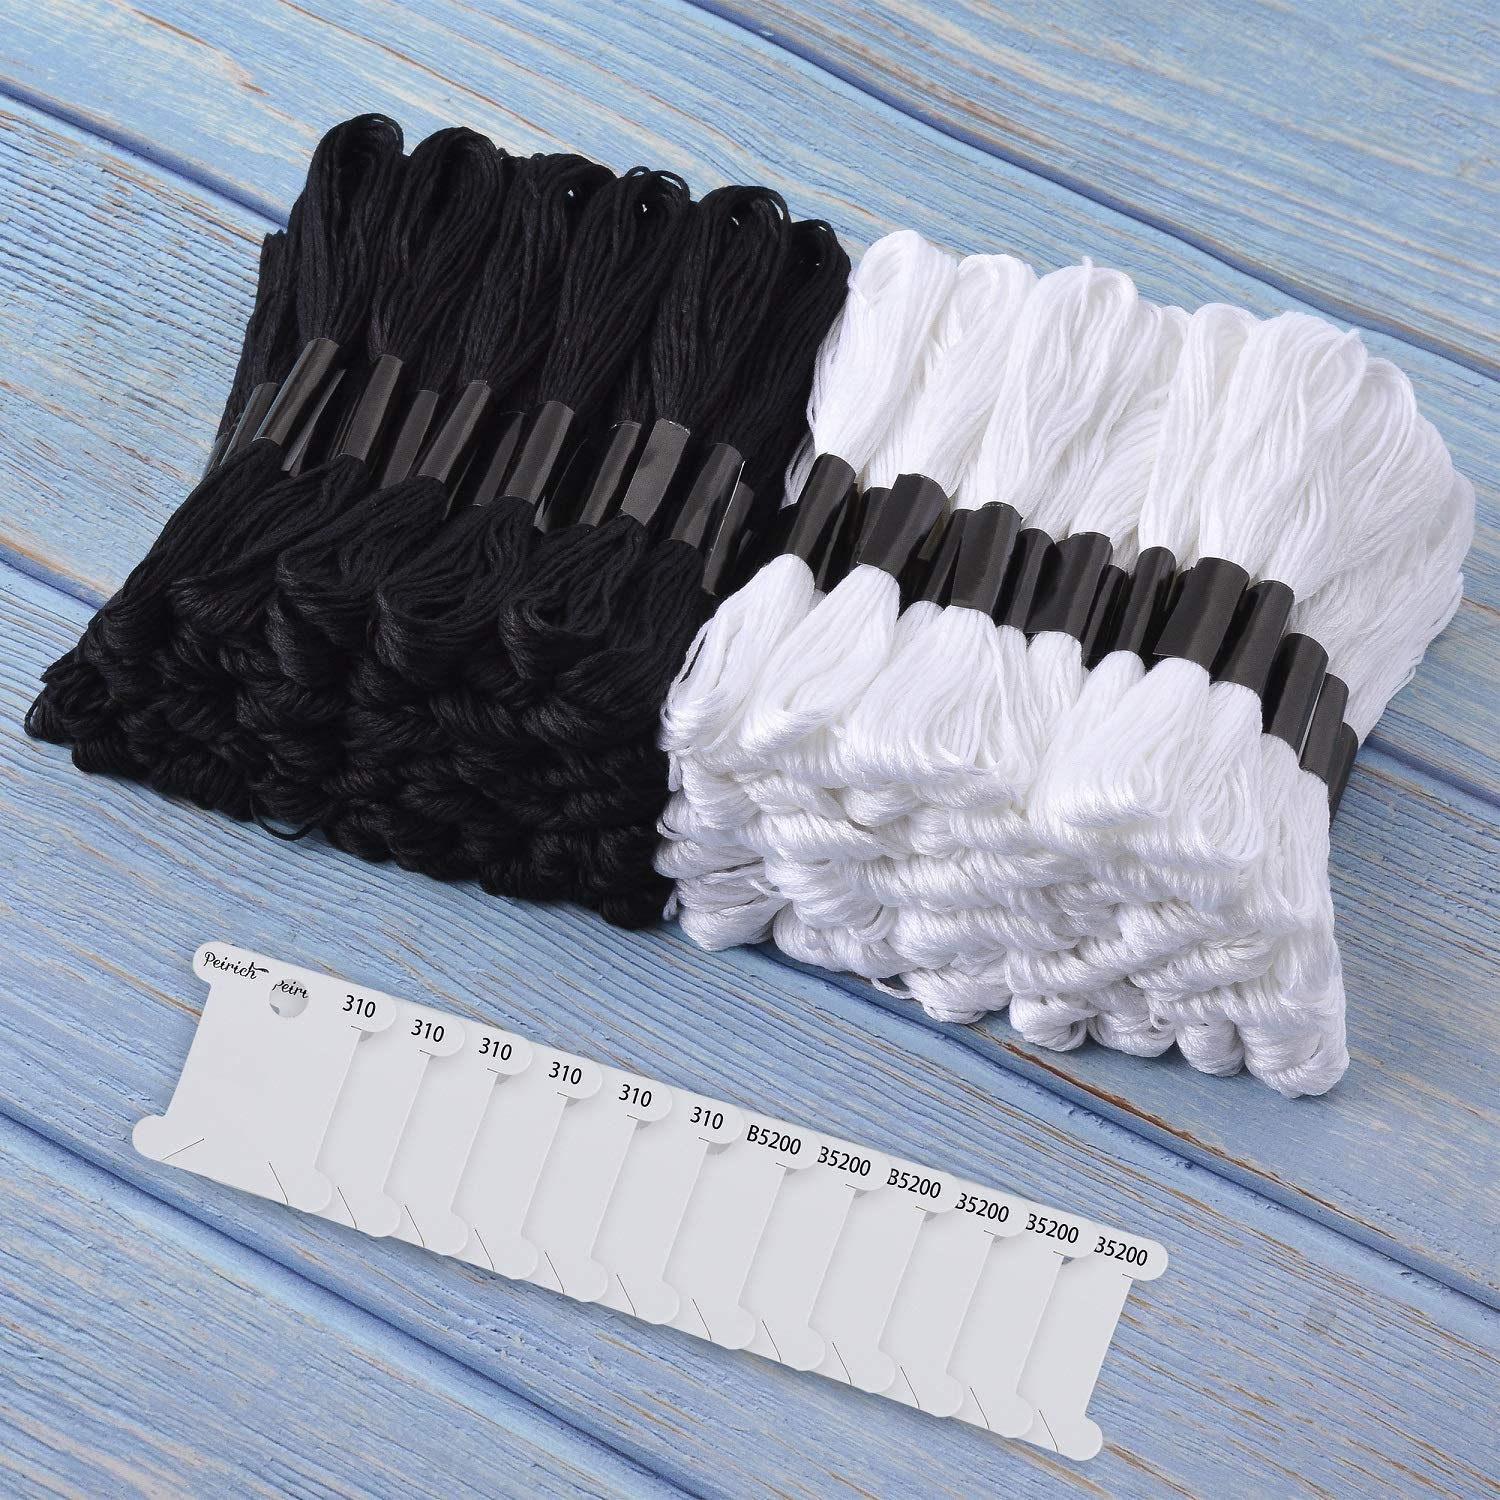 Cross Stitch Project Peirich 96 Black White Skeins Stranded Cross Stitch Floss Friendship Bracelets String Embroidery Thread with 12 Pieces Floss Bobbins